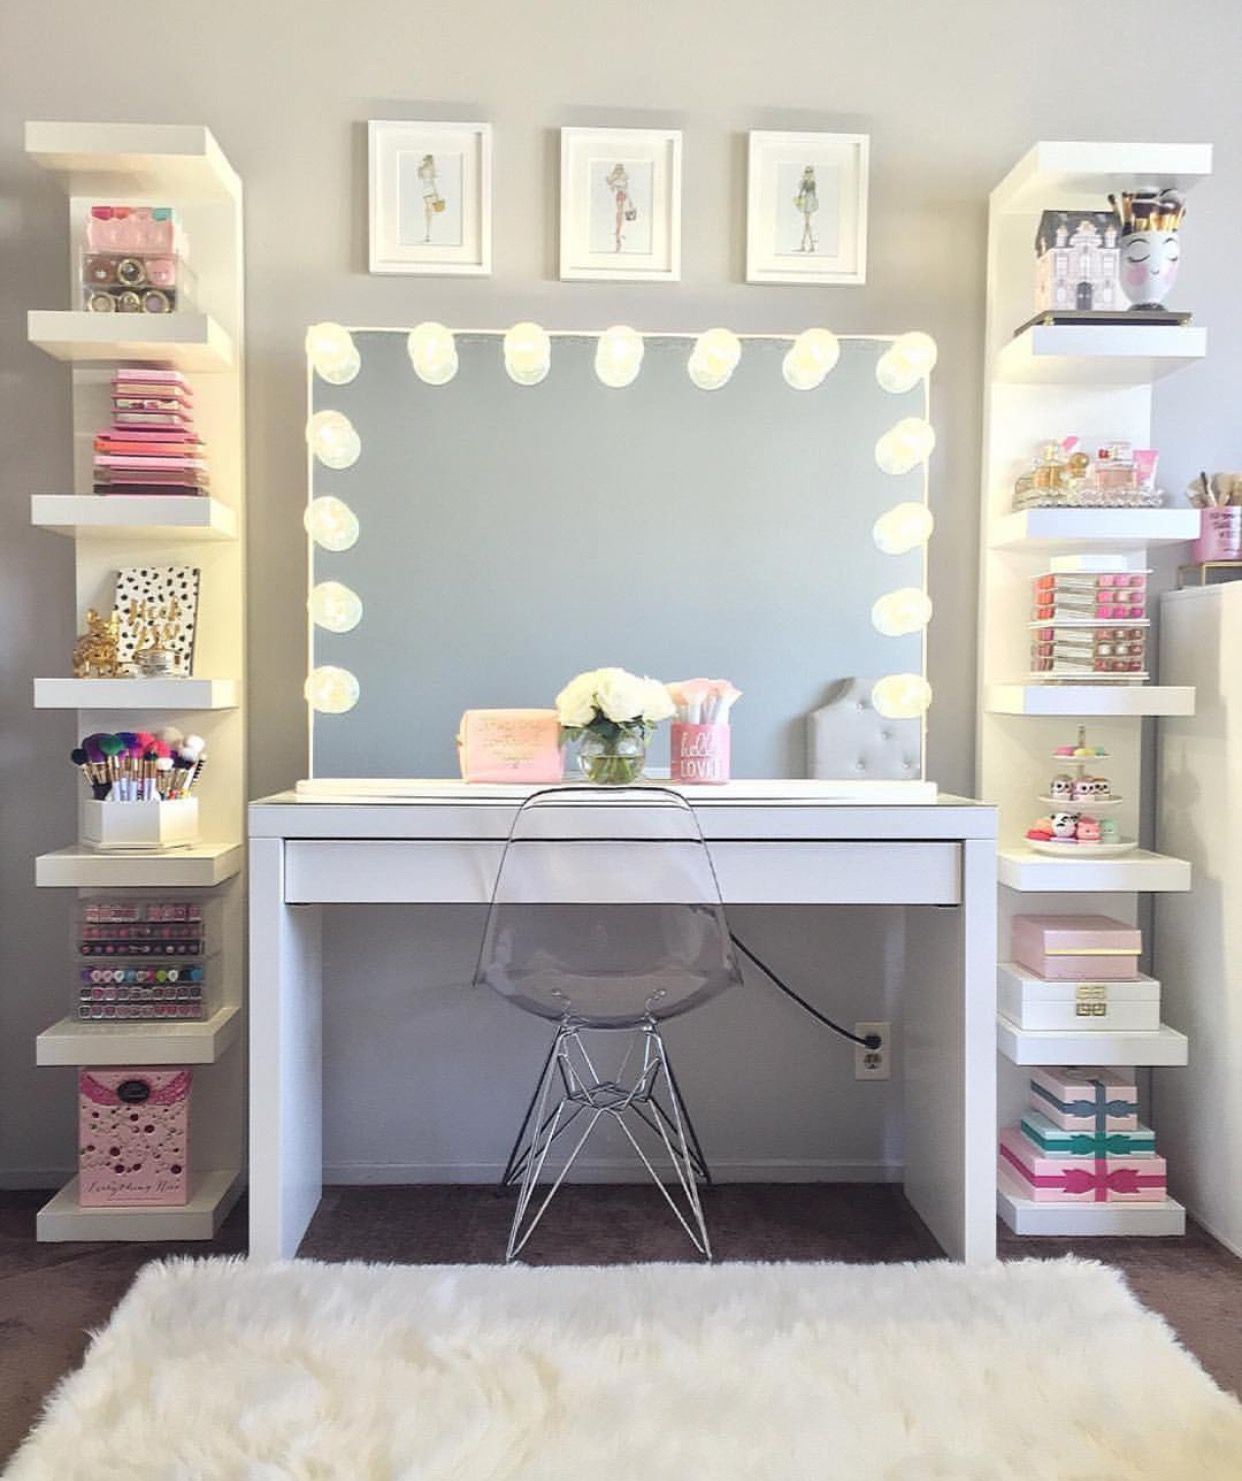 IKEA shelf on floor | Apartment Ideas | Pinterest | Dormitorio ...